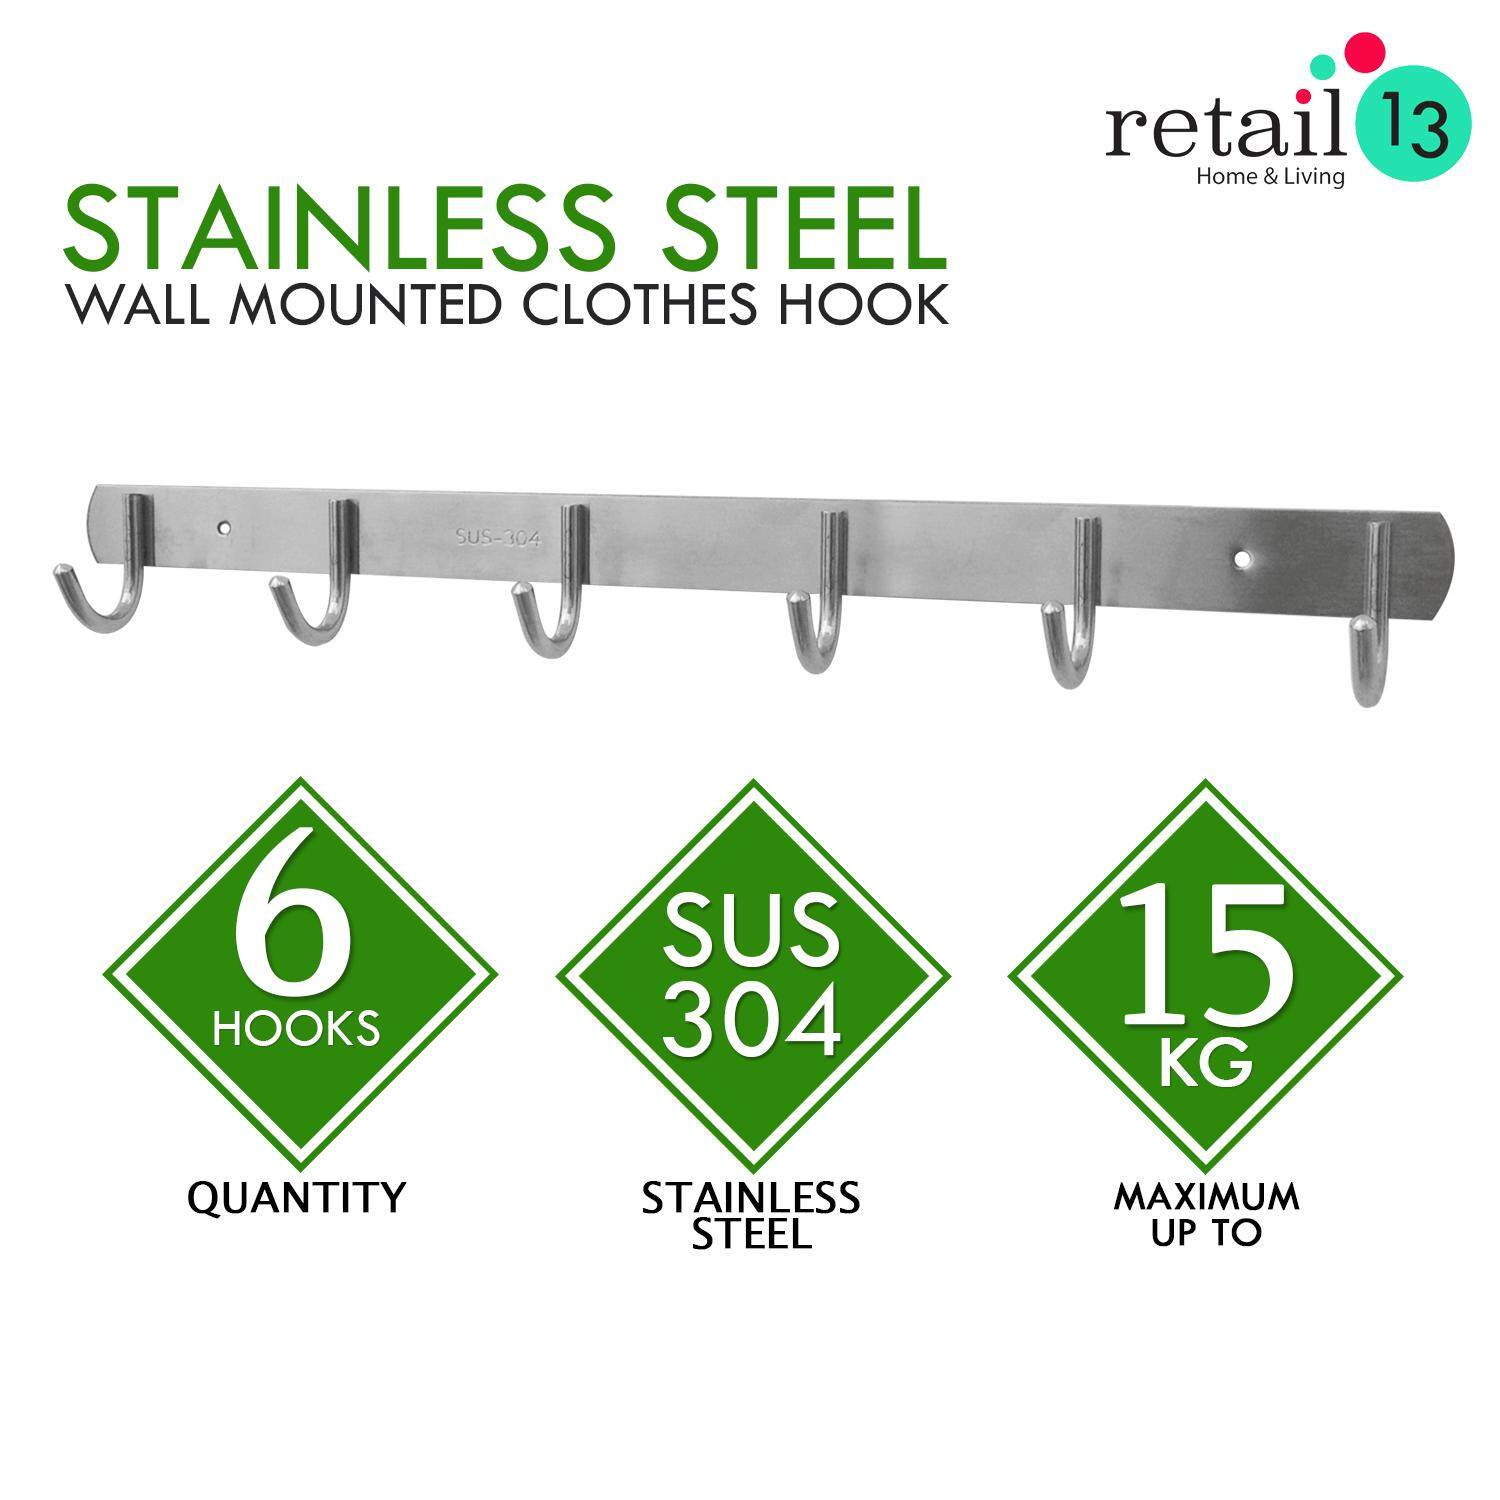 6 HOOKS SUS304 STAINLESS STEEL WALL MOUNTED CLOTHES RACK STORAGE BEDROOM, KITCHEN, BATHROOM